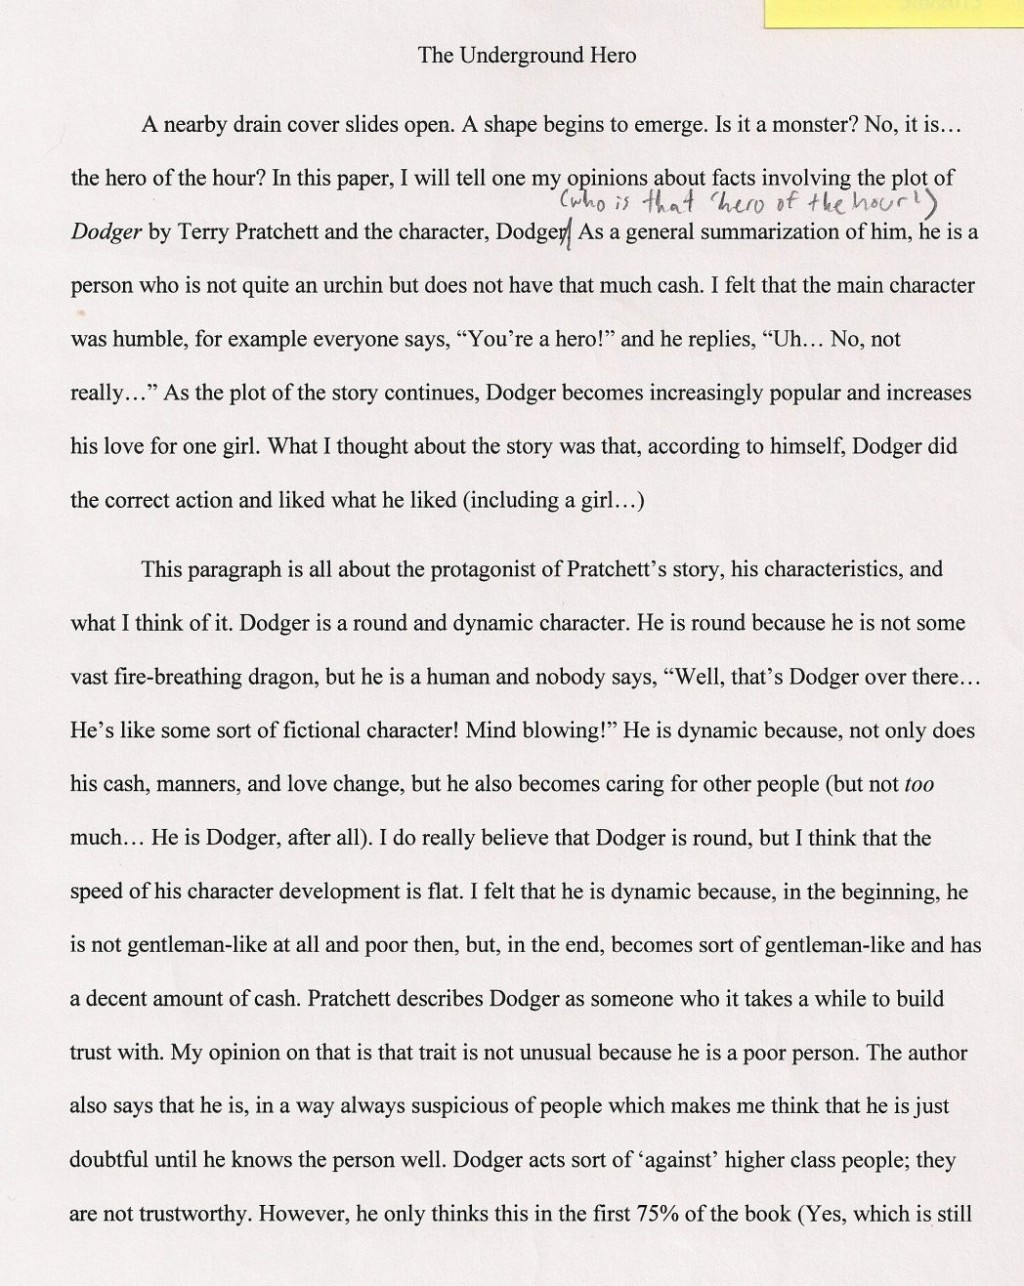 003 The Dream Act Essay On Heroes How To Write Good Underground H Sample Essays New Pdf Topics 1048x1317 Wonderful And Scene Number In A Killer Large